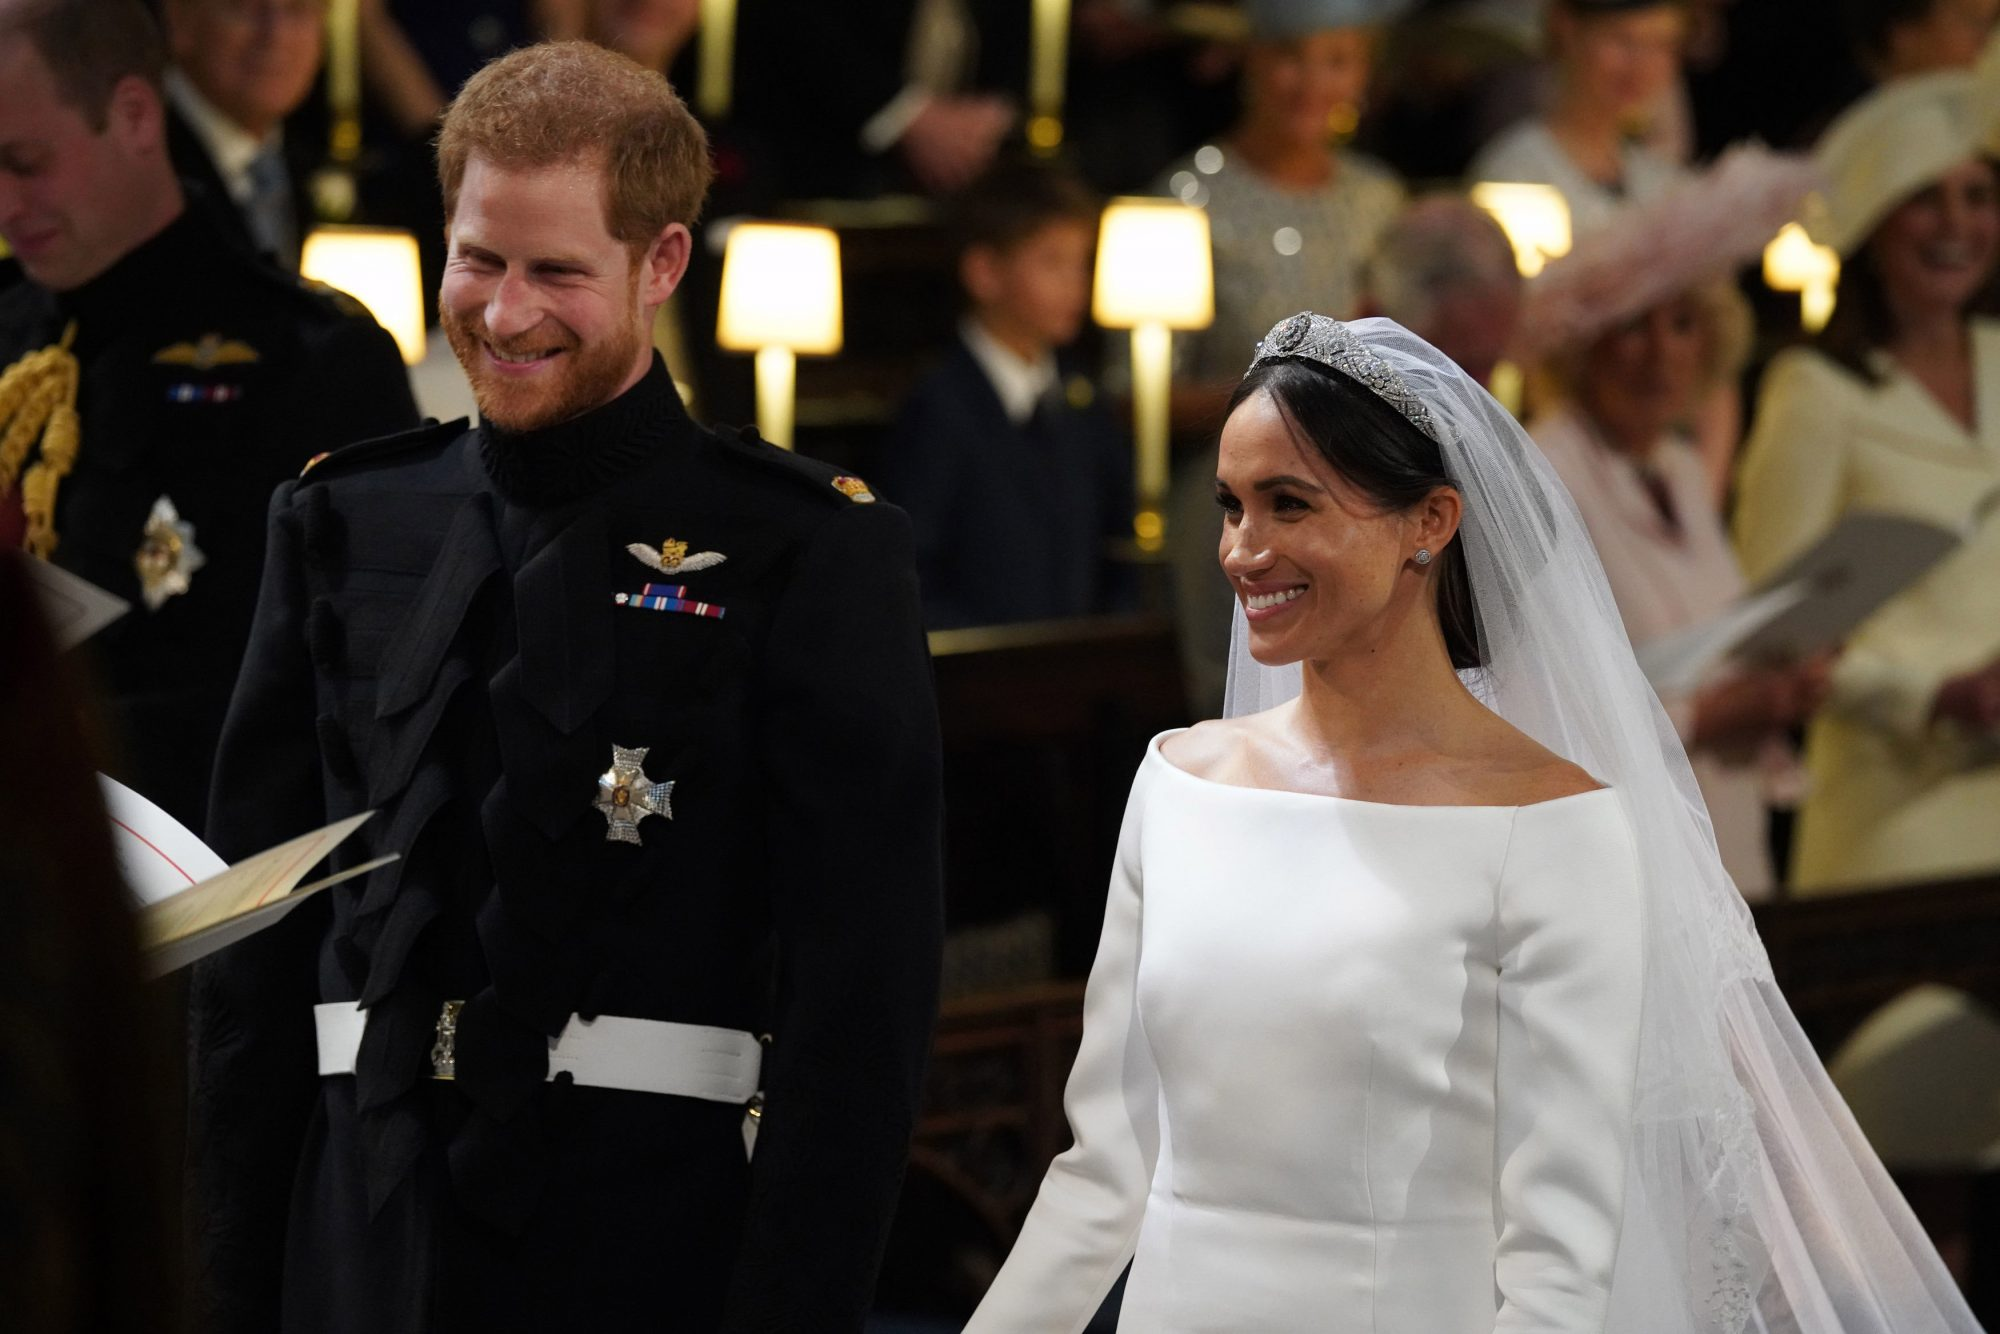 Prince Harry and Meghan Markle Just Received Their New Royal Titles from the Queen!